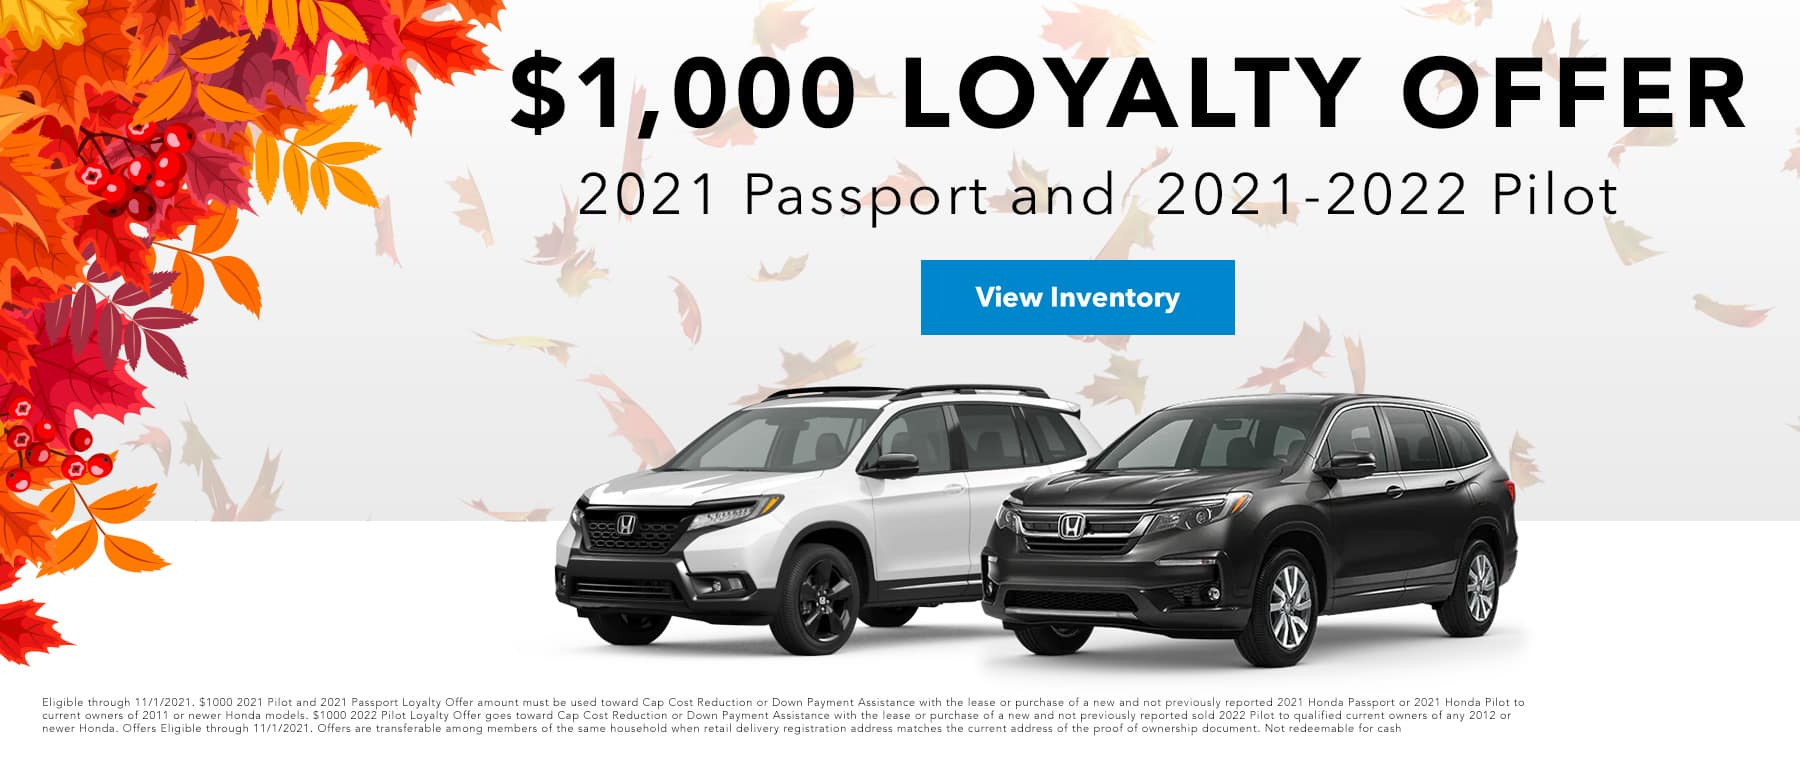 $1,000 LOYALTY OFFER, 2021 PASSPORT AND 2021 - 2022 PILOT